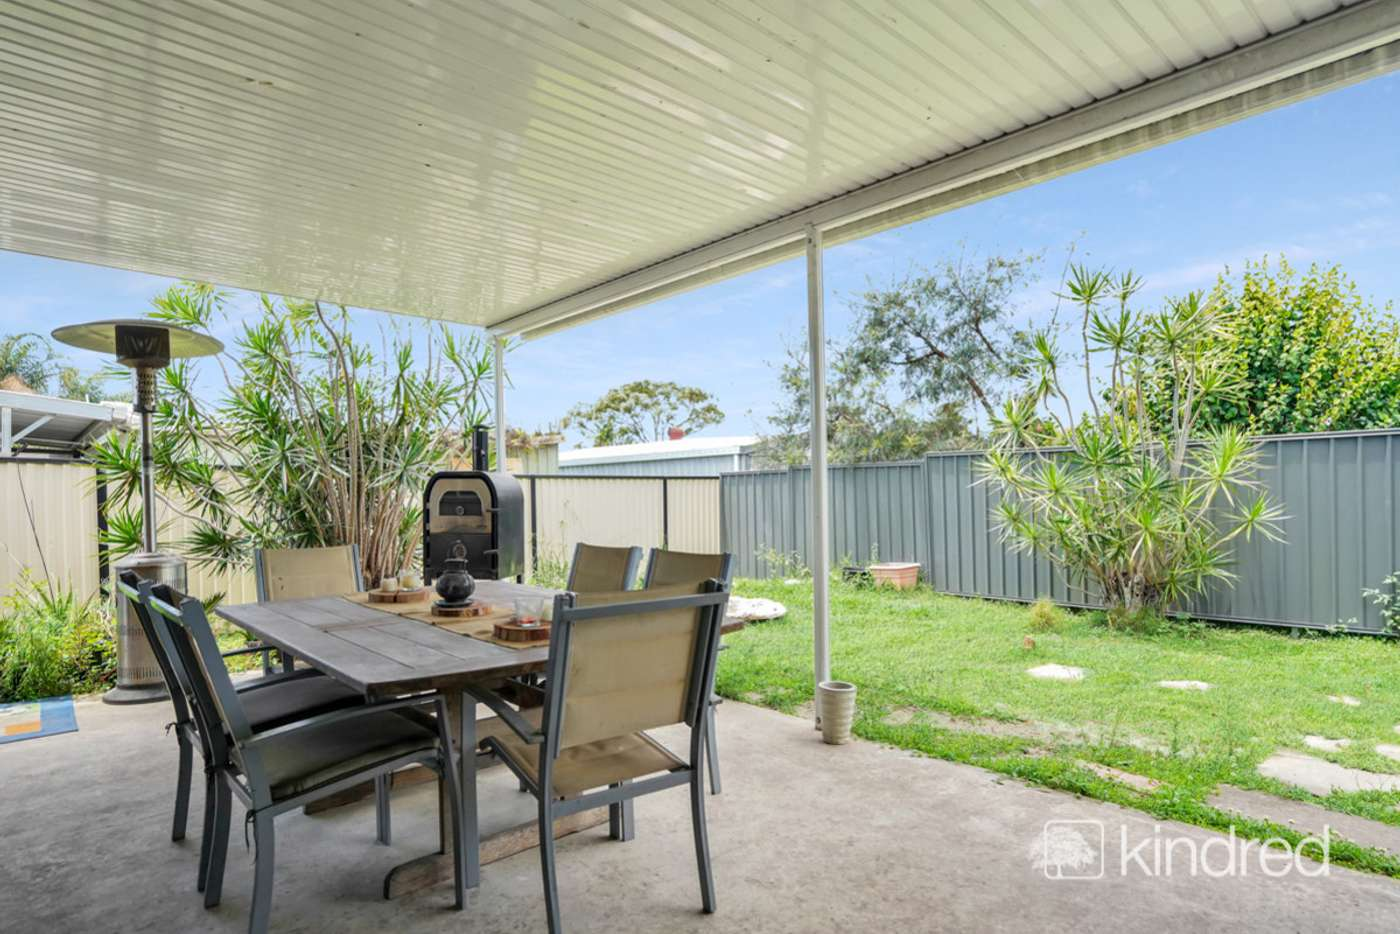 Sixth view of Homely house listing, 14 Samaya Street, Burpengary QLD 4505